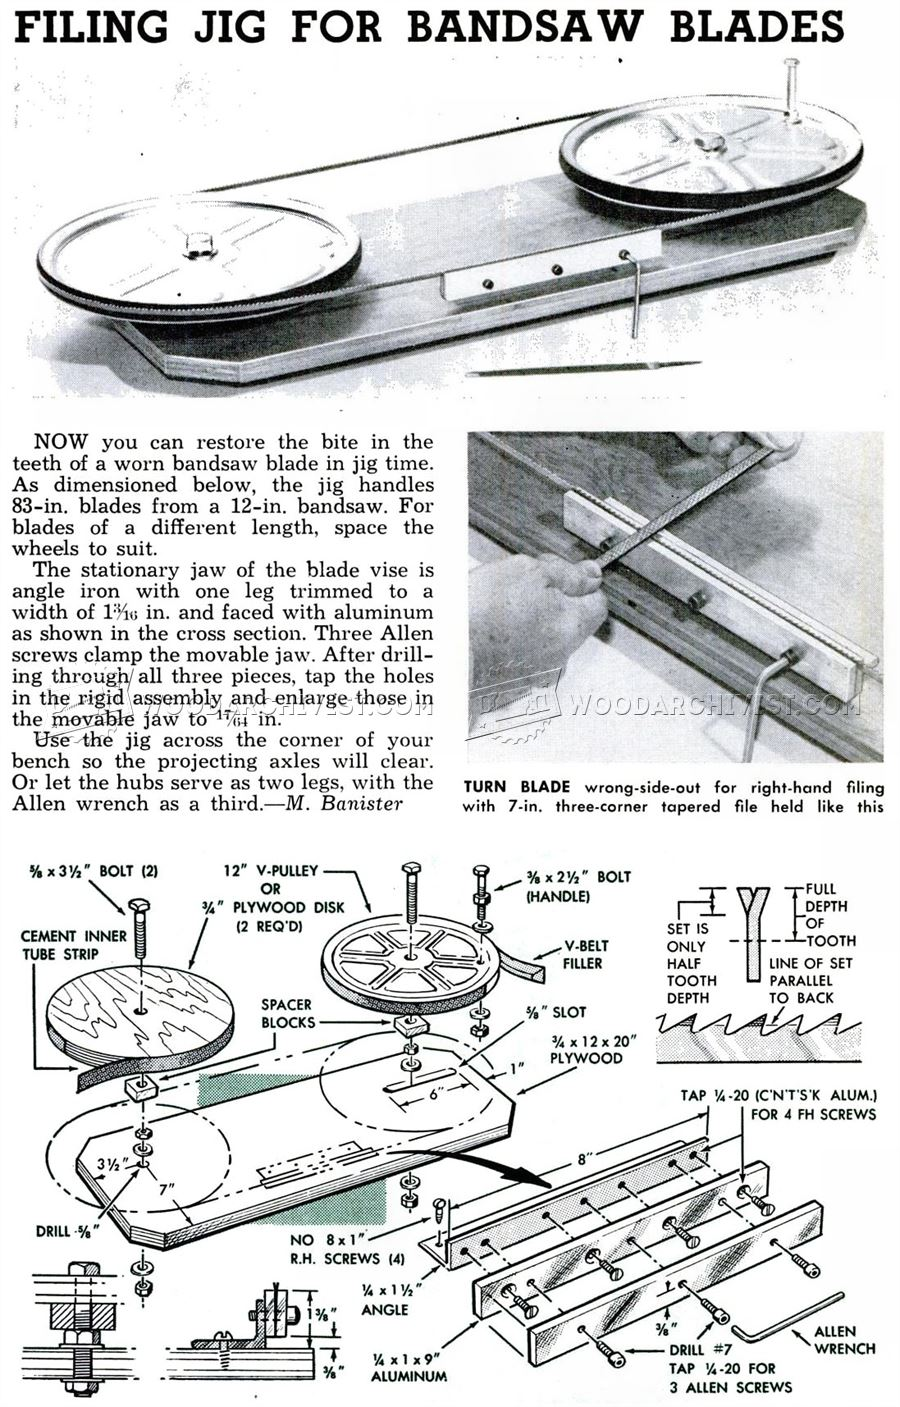 Filing Jig for Band Saw Blades